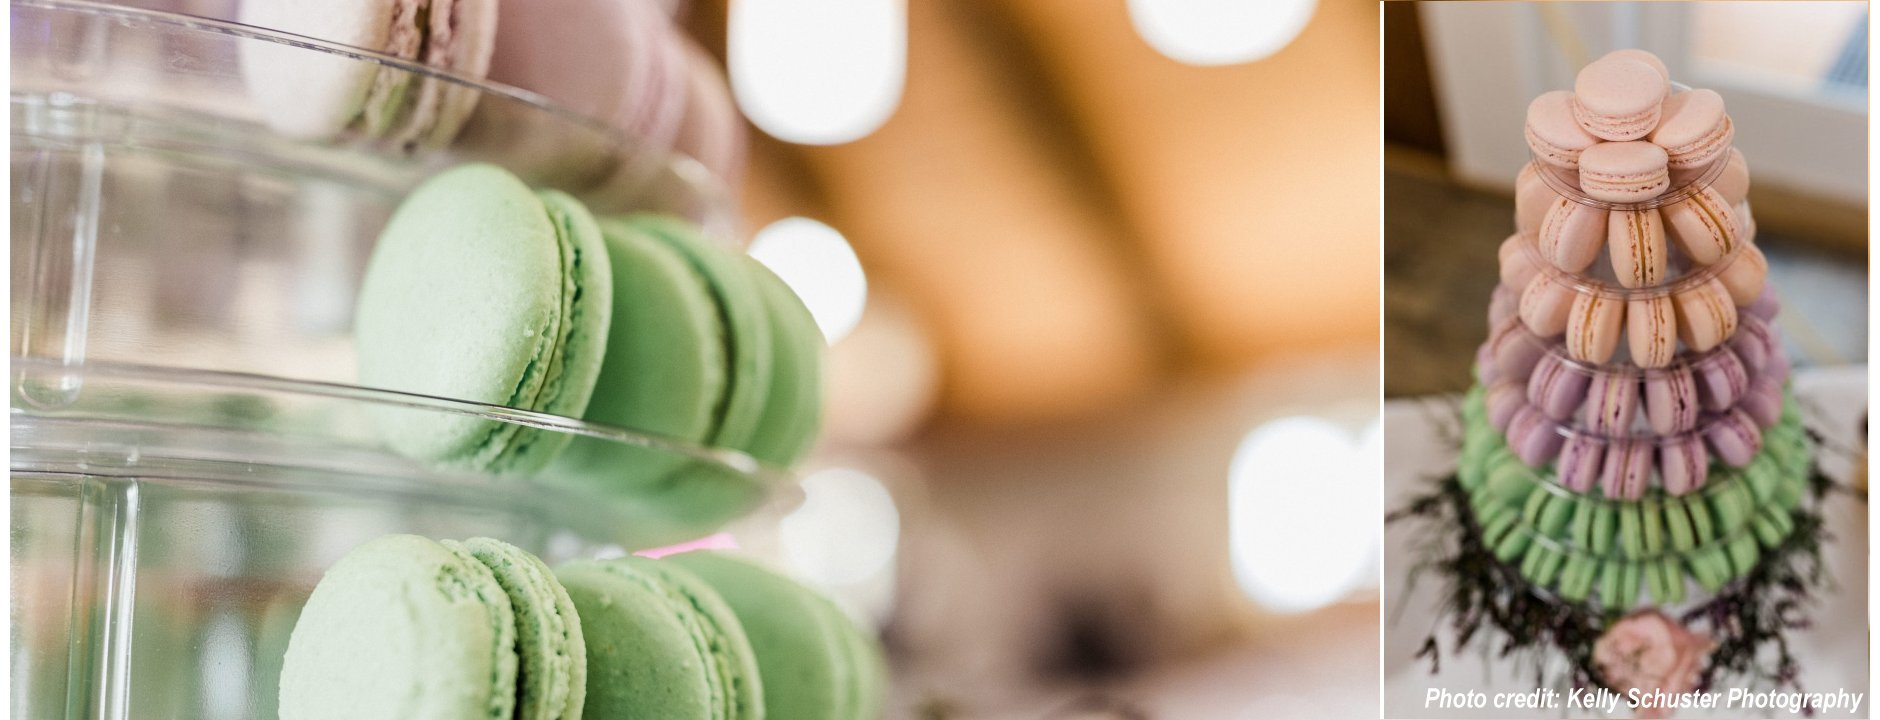 Macaron and all Towers